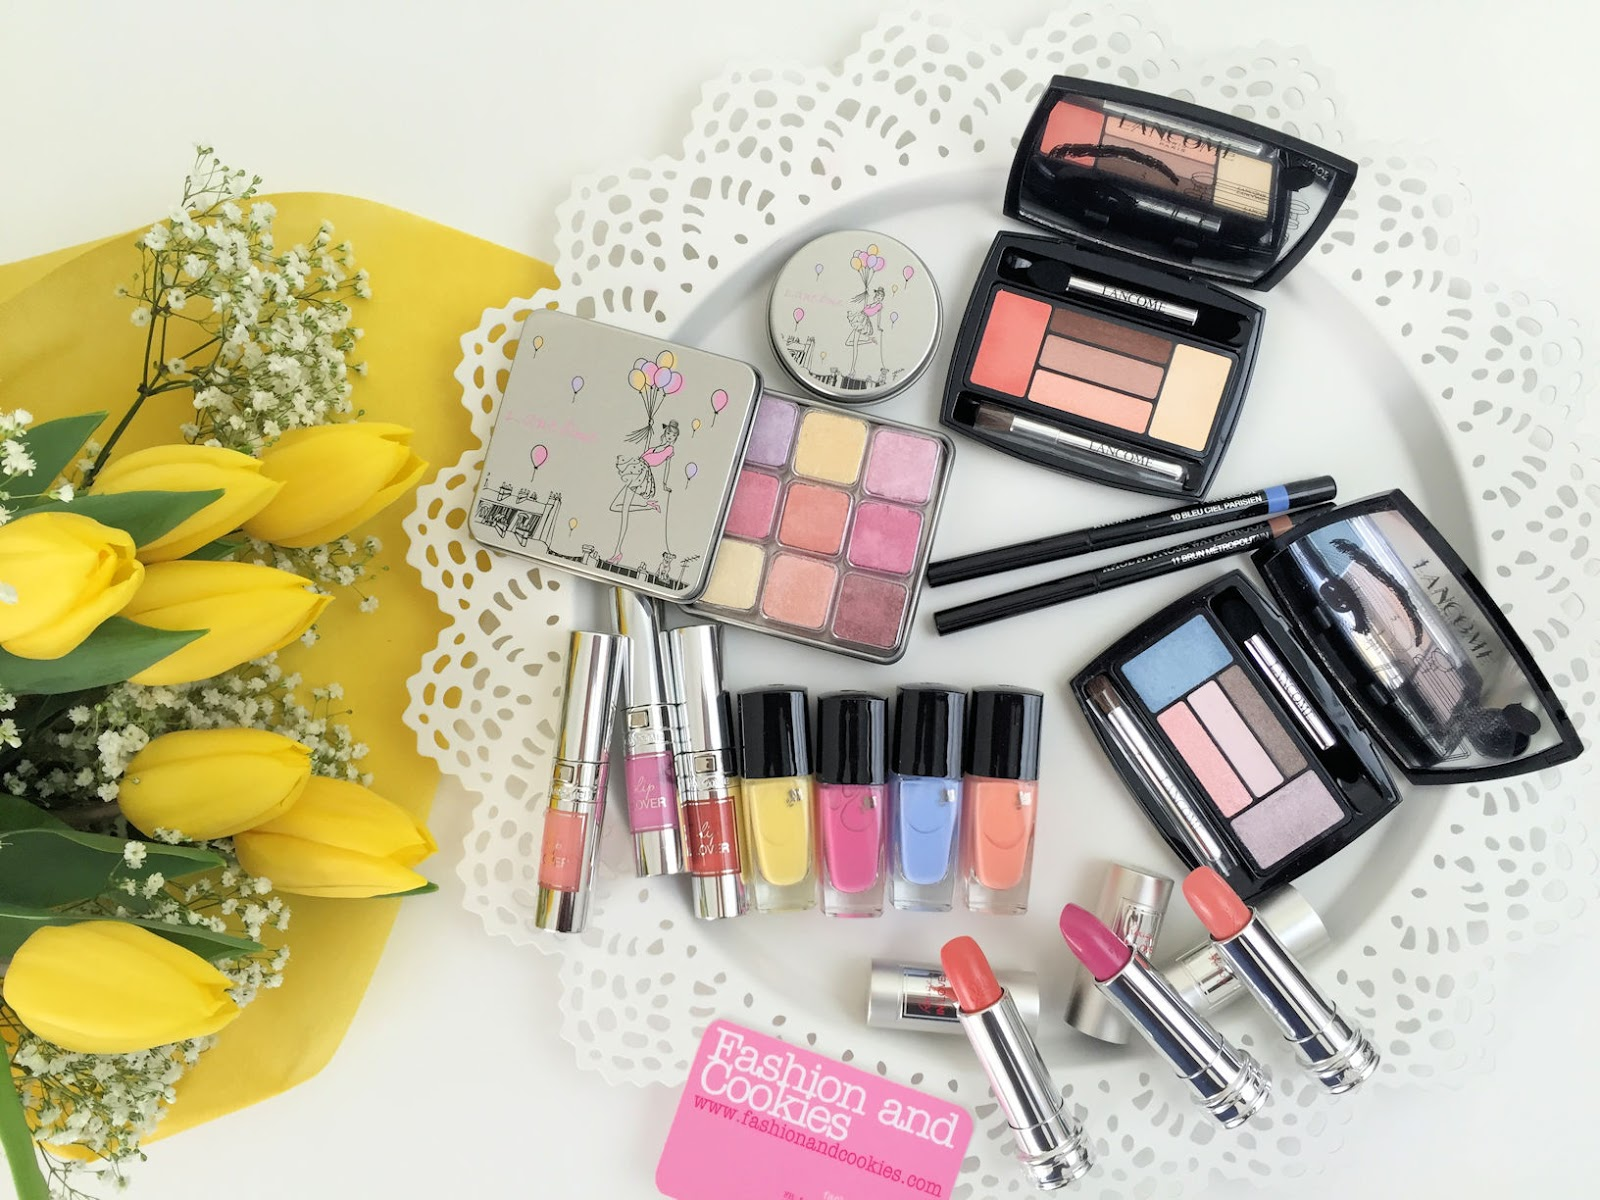 Lancôme makeup collection for Spring 2016 My Parisian Pastels review on Fashion and Cookies beauty blog, beauty blogger